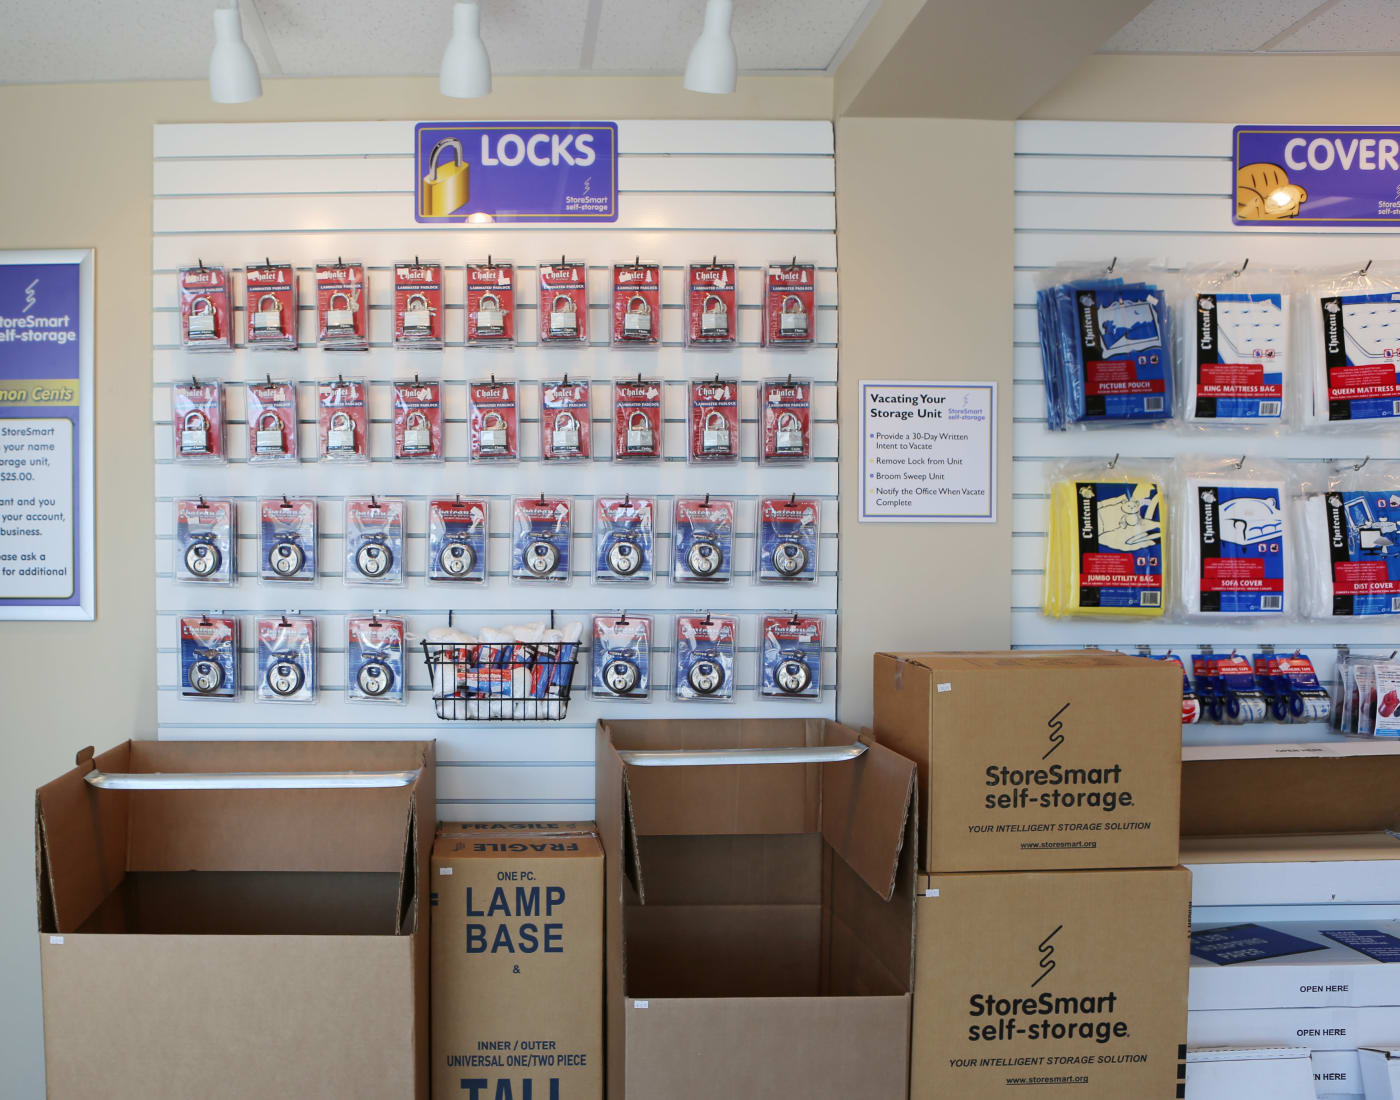 Packing and moving supplies for sale at StoreSmart Self-Storage in Spring Lake, North Carolina